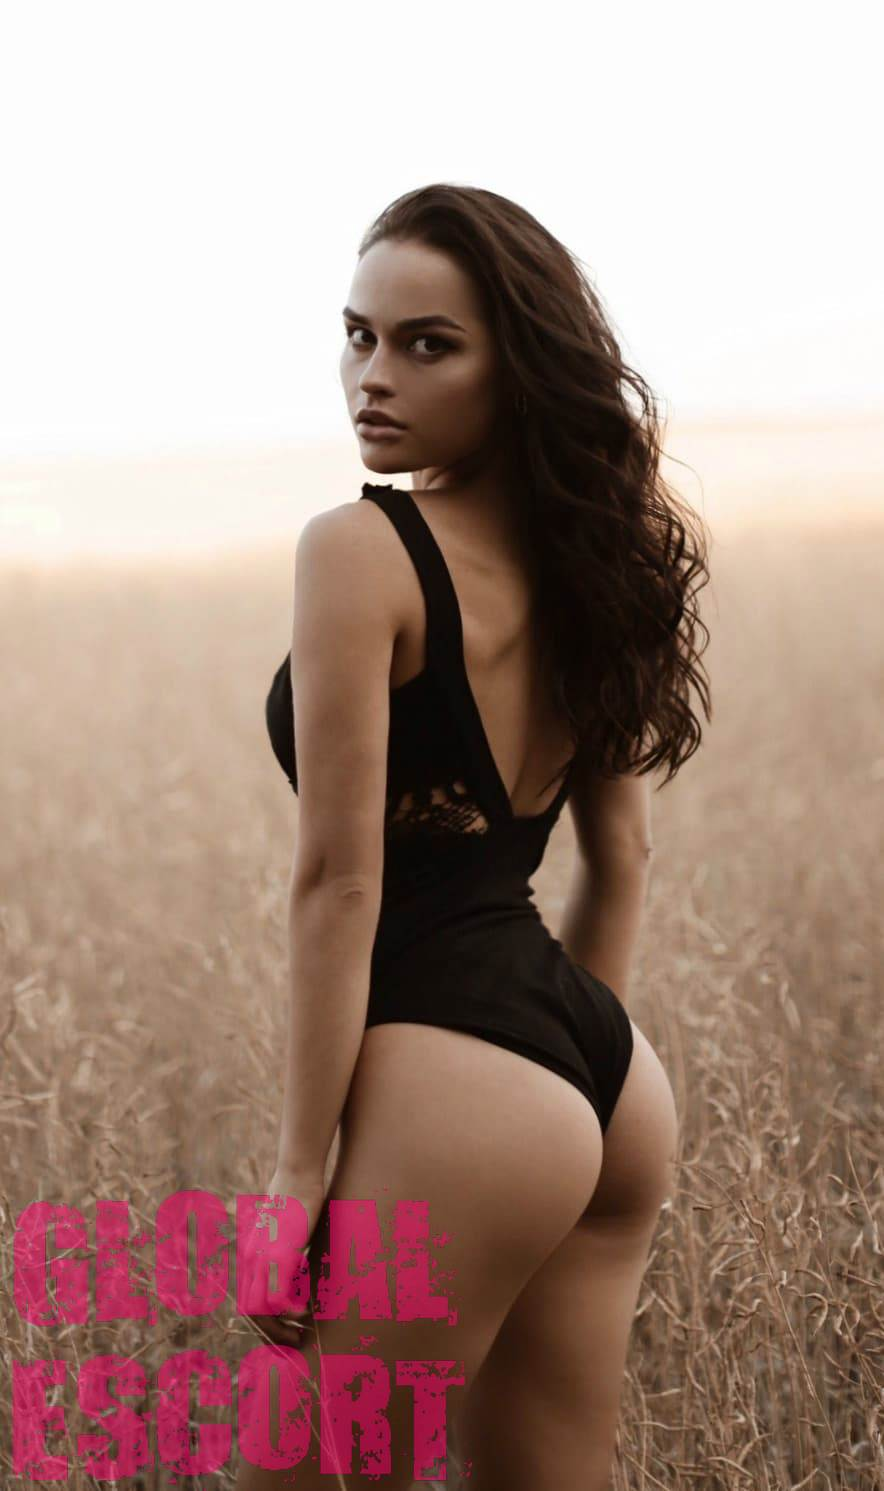 Sexy brunette Sofia in a black swimsuit in a field